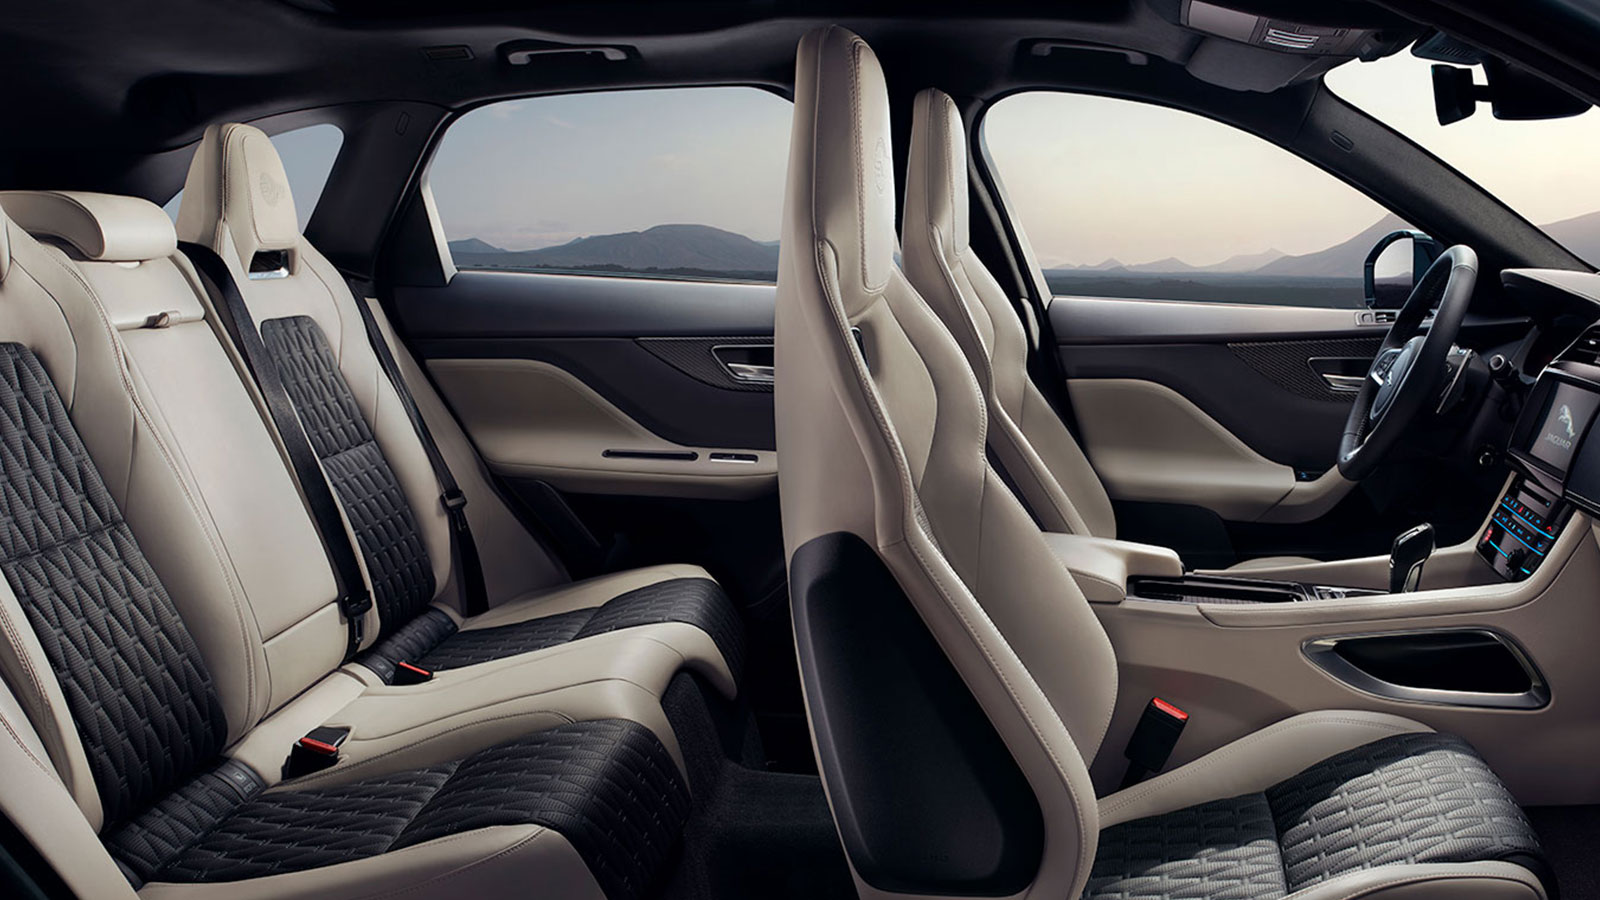 Jaguar F-PACE Interior.